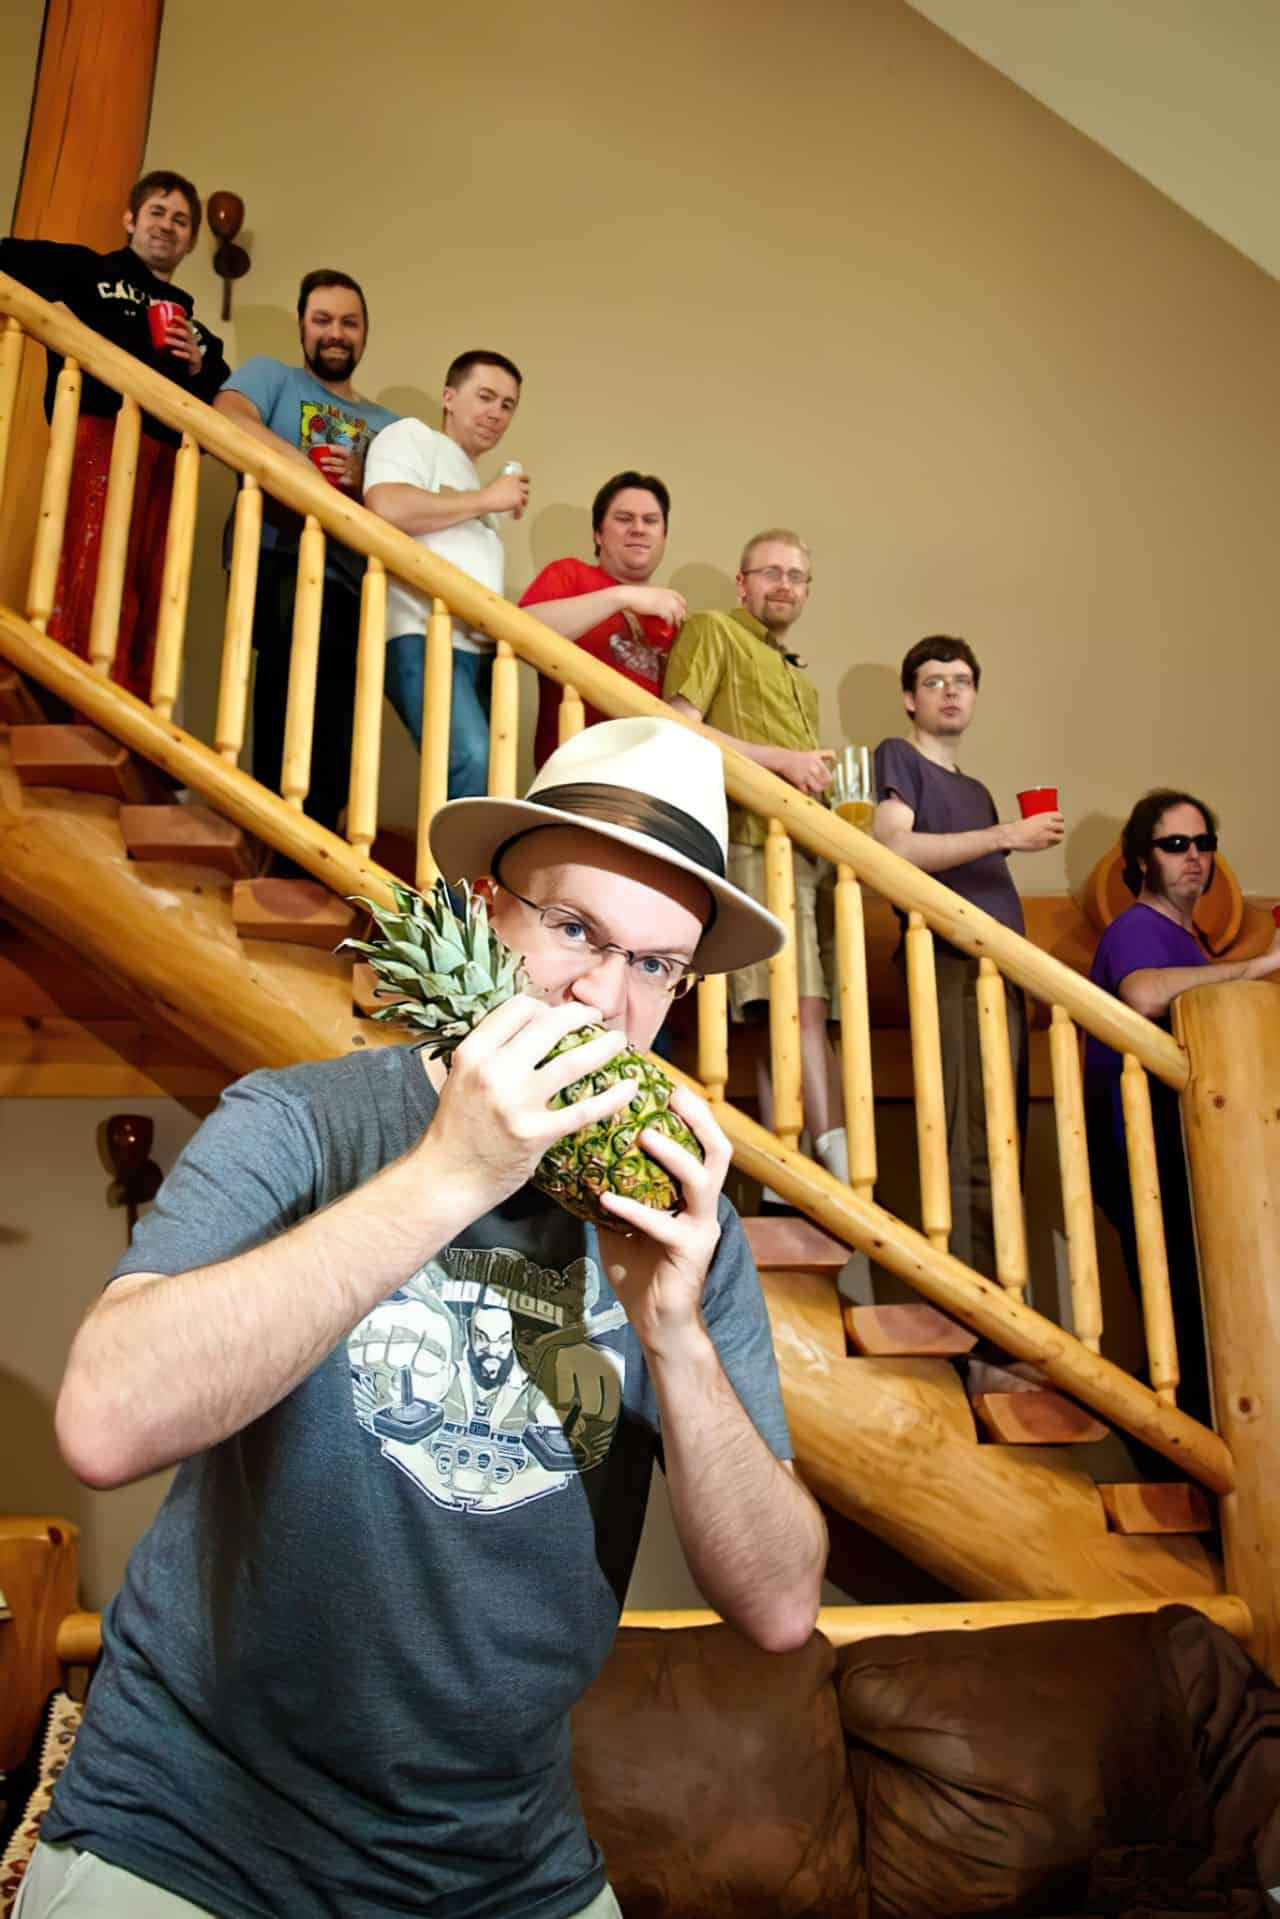 bachelor party eating pineapple